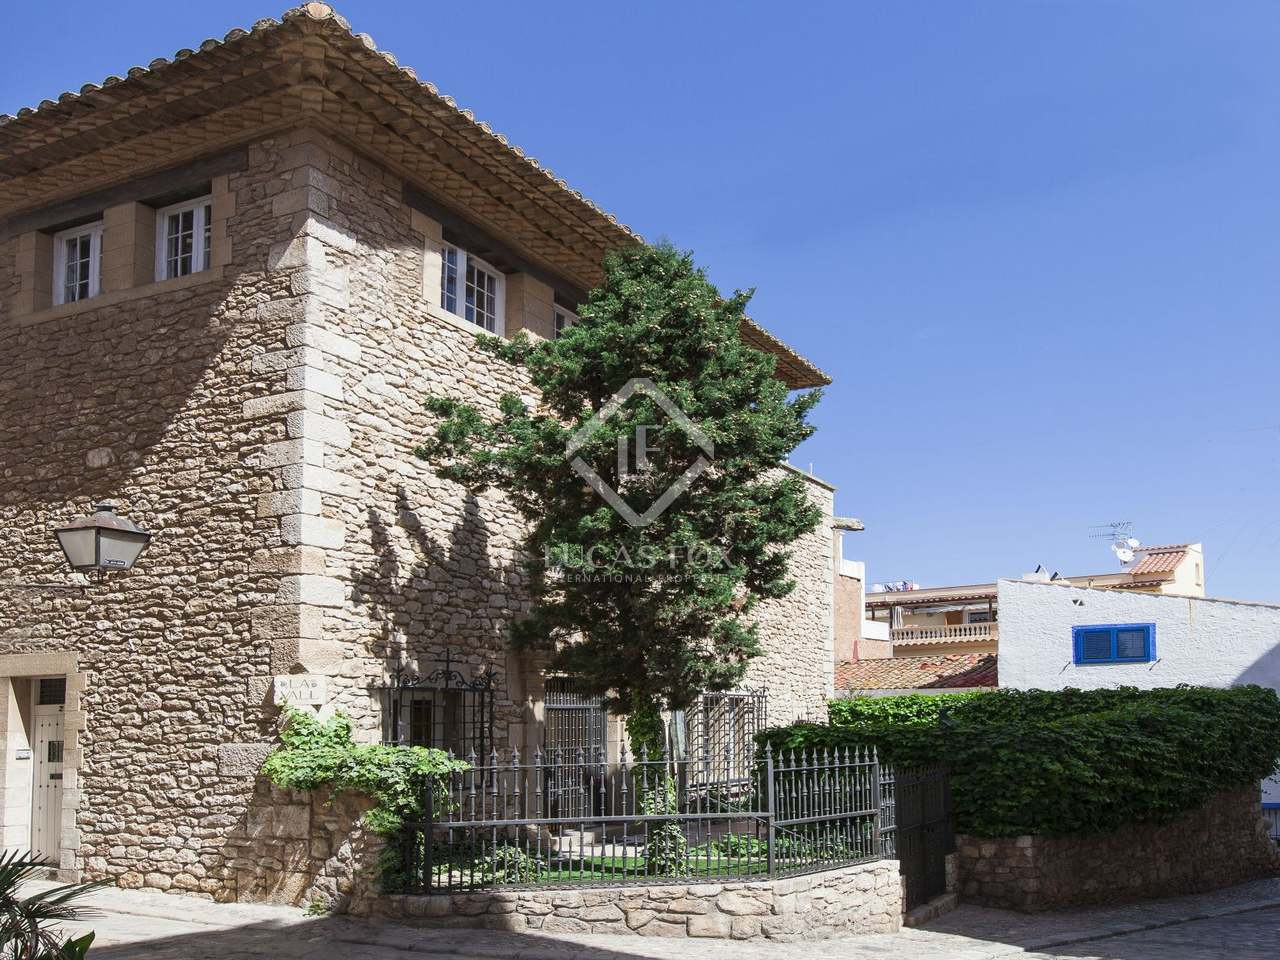 Property For Sale In Sitges Old Town